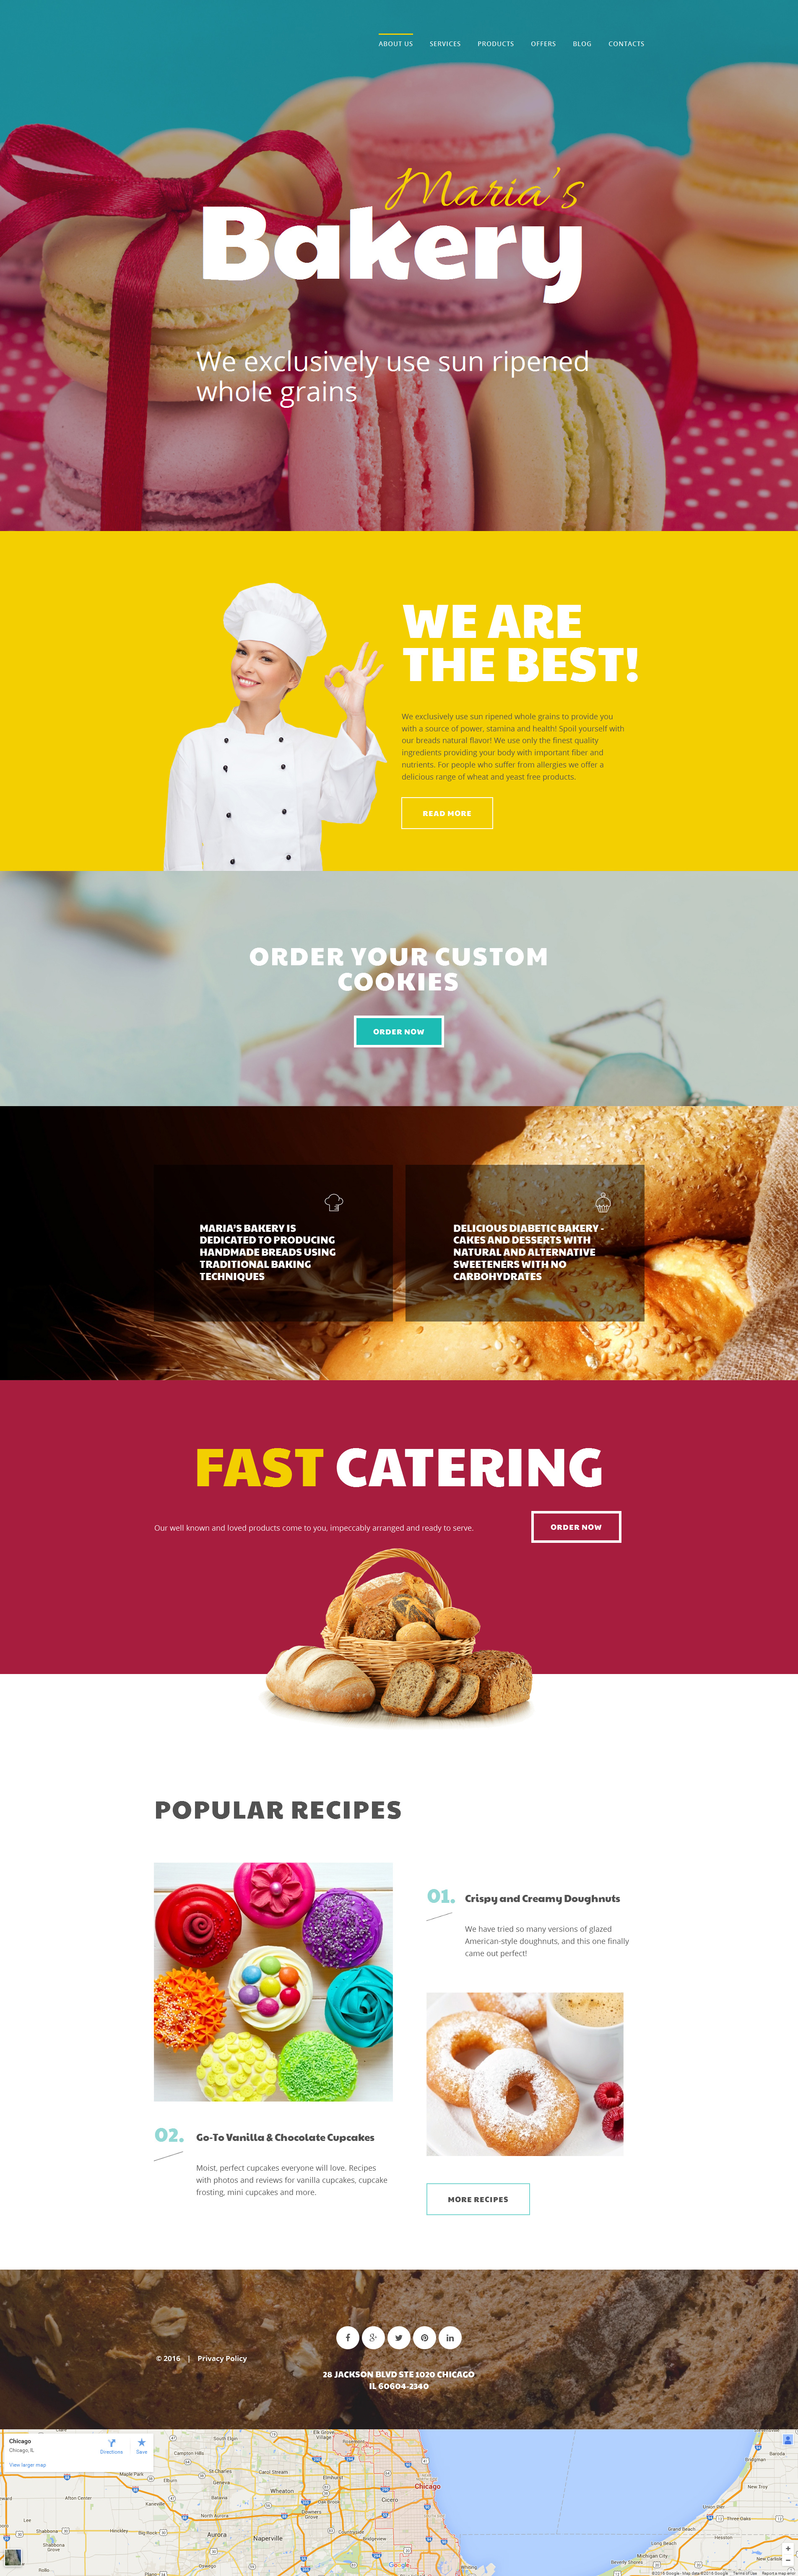 Bakery Responsive Moto CMS 3 Template - screenshot